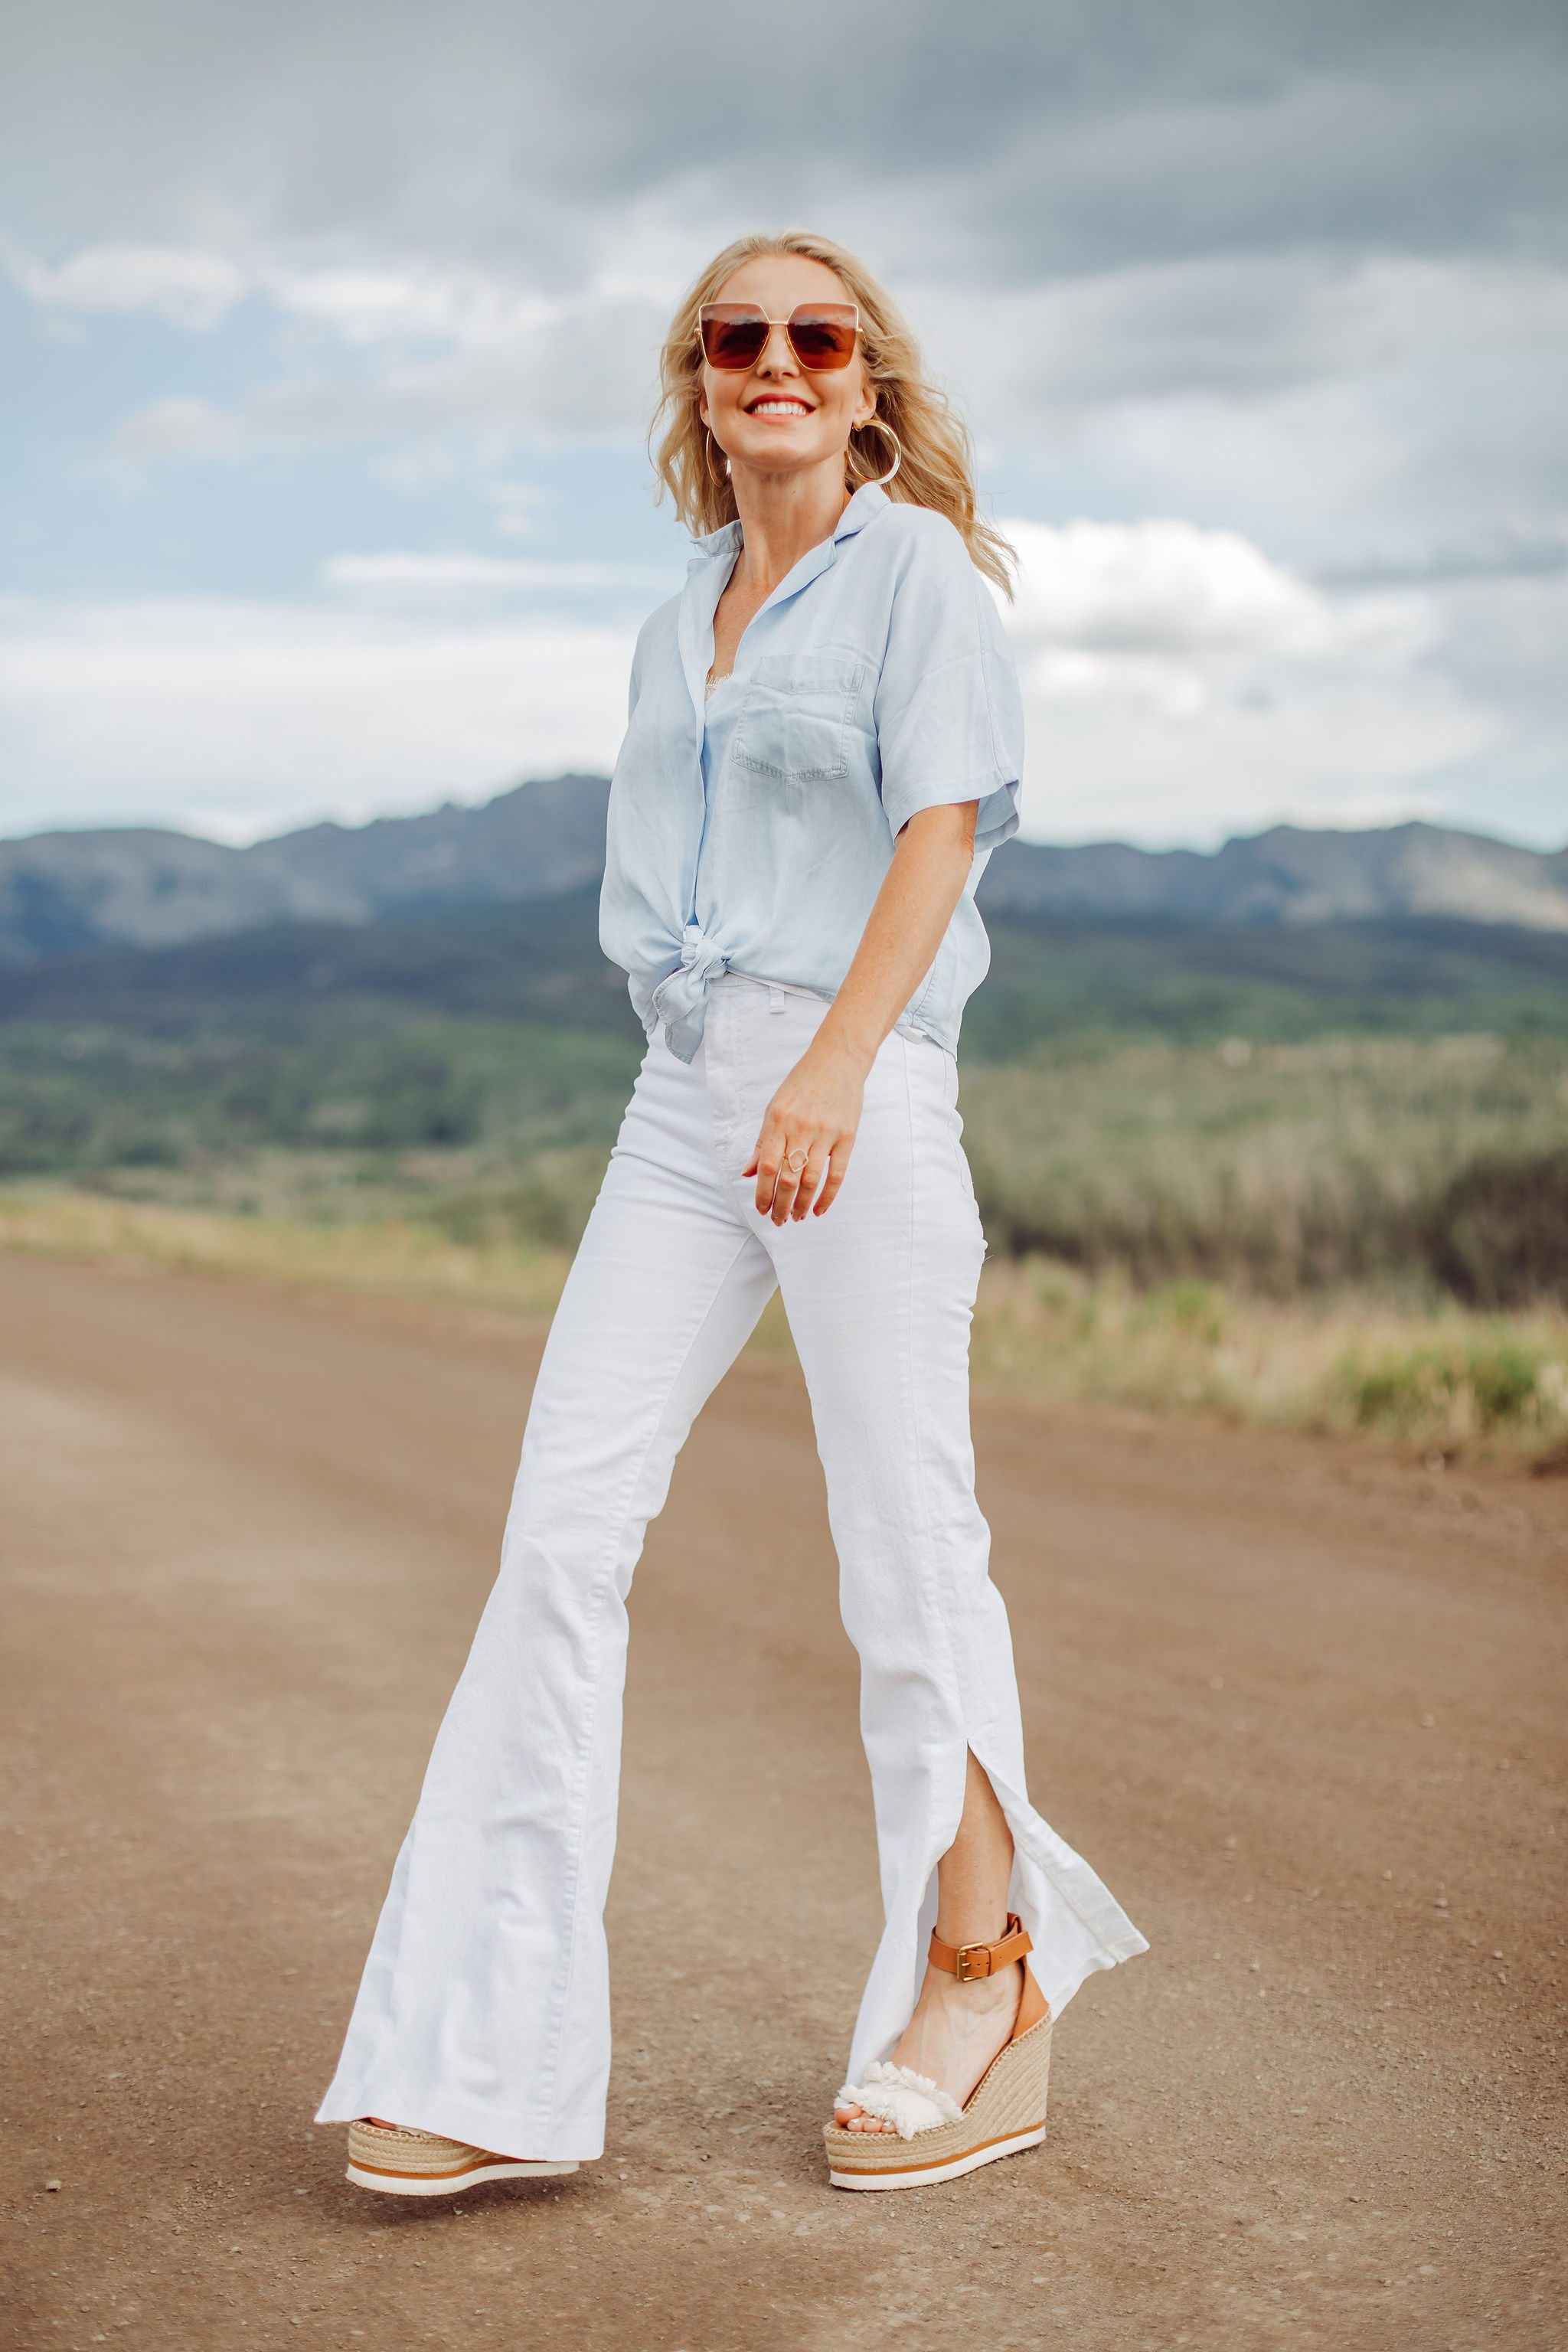 Blouses That Cover Arms, Fashion blogger Erin Busbee of Busbee Style wearing a blue tie-front button down shirt by Rails with high waisted white slit hem jeans by 7 For All Mankind and See by Chloe wedges and Saint Laurent sunglasses in Telluride, Colorado